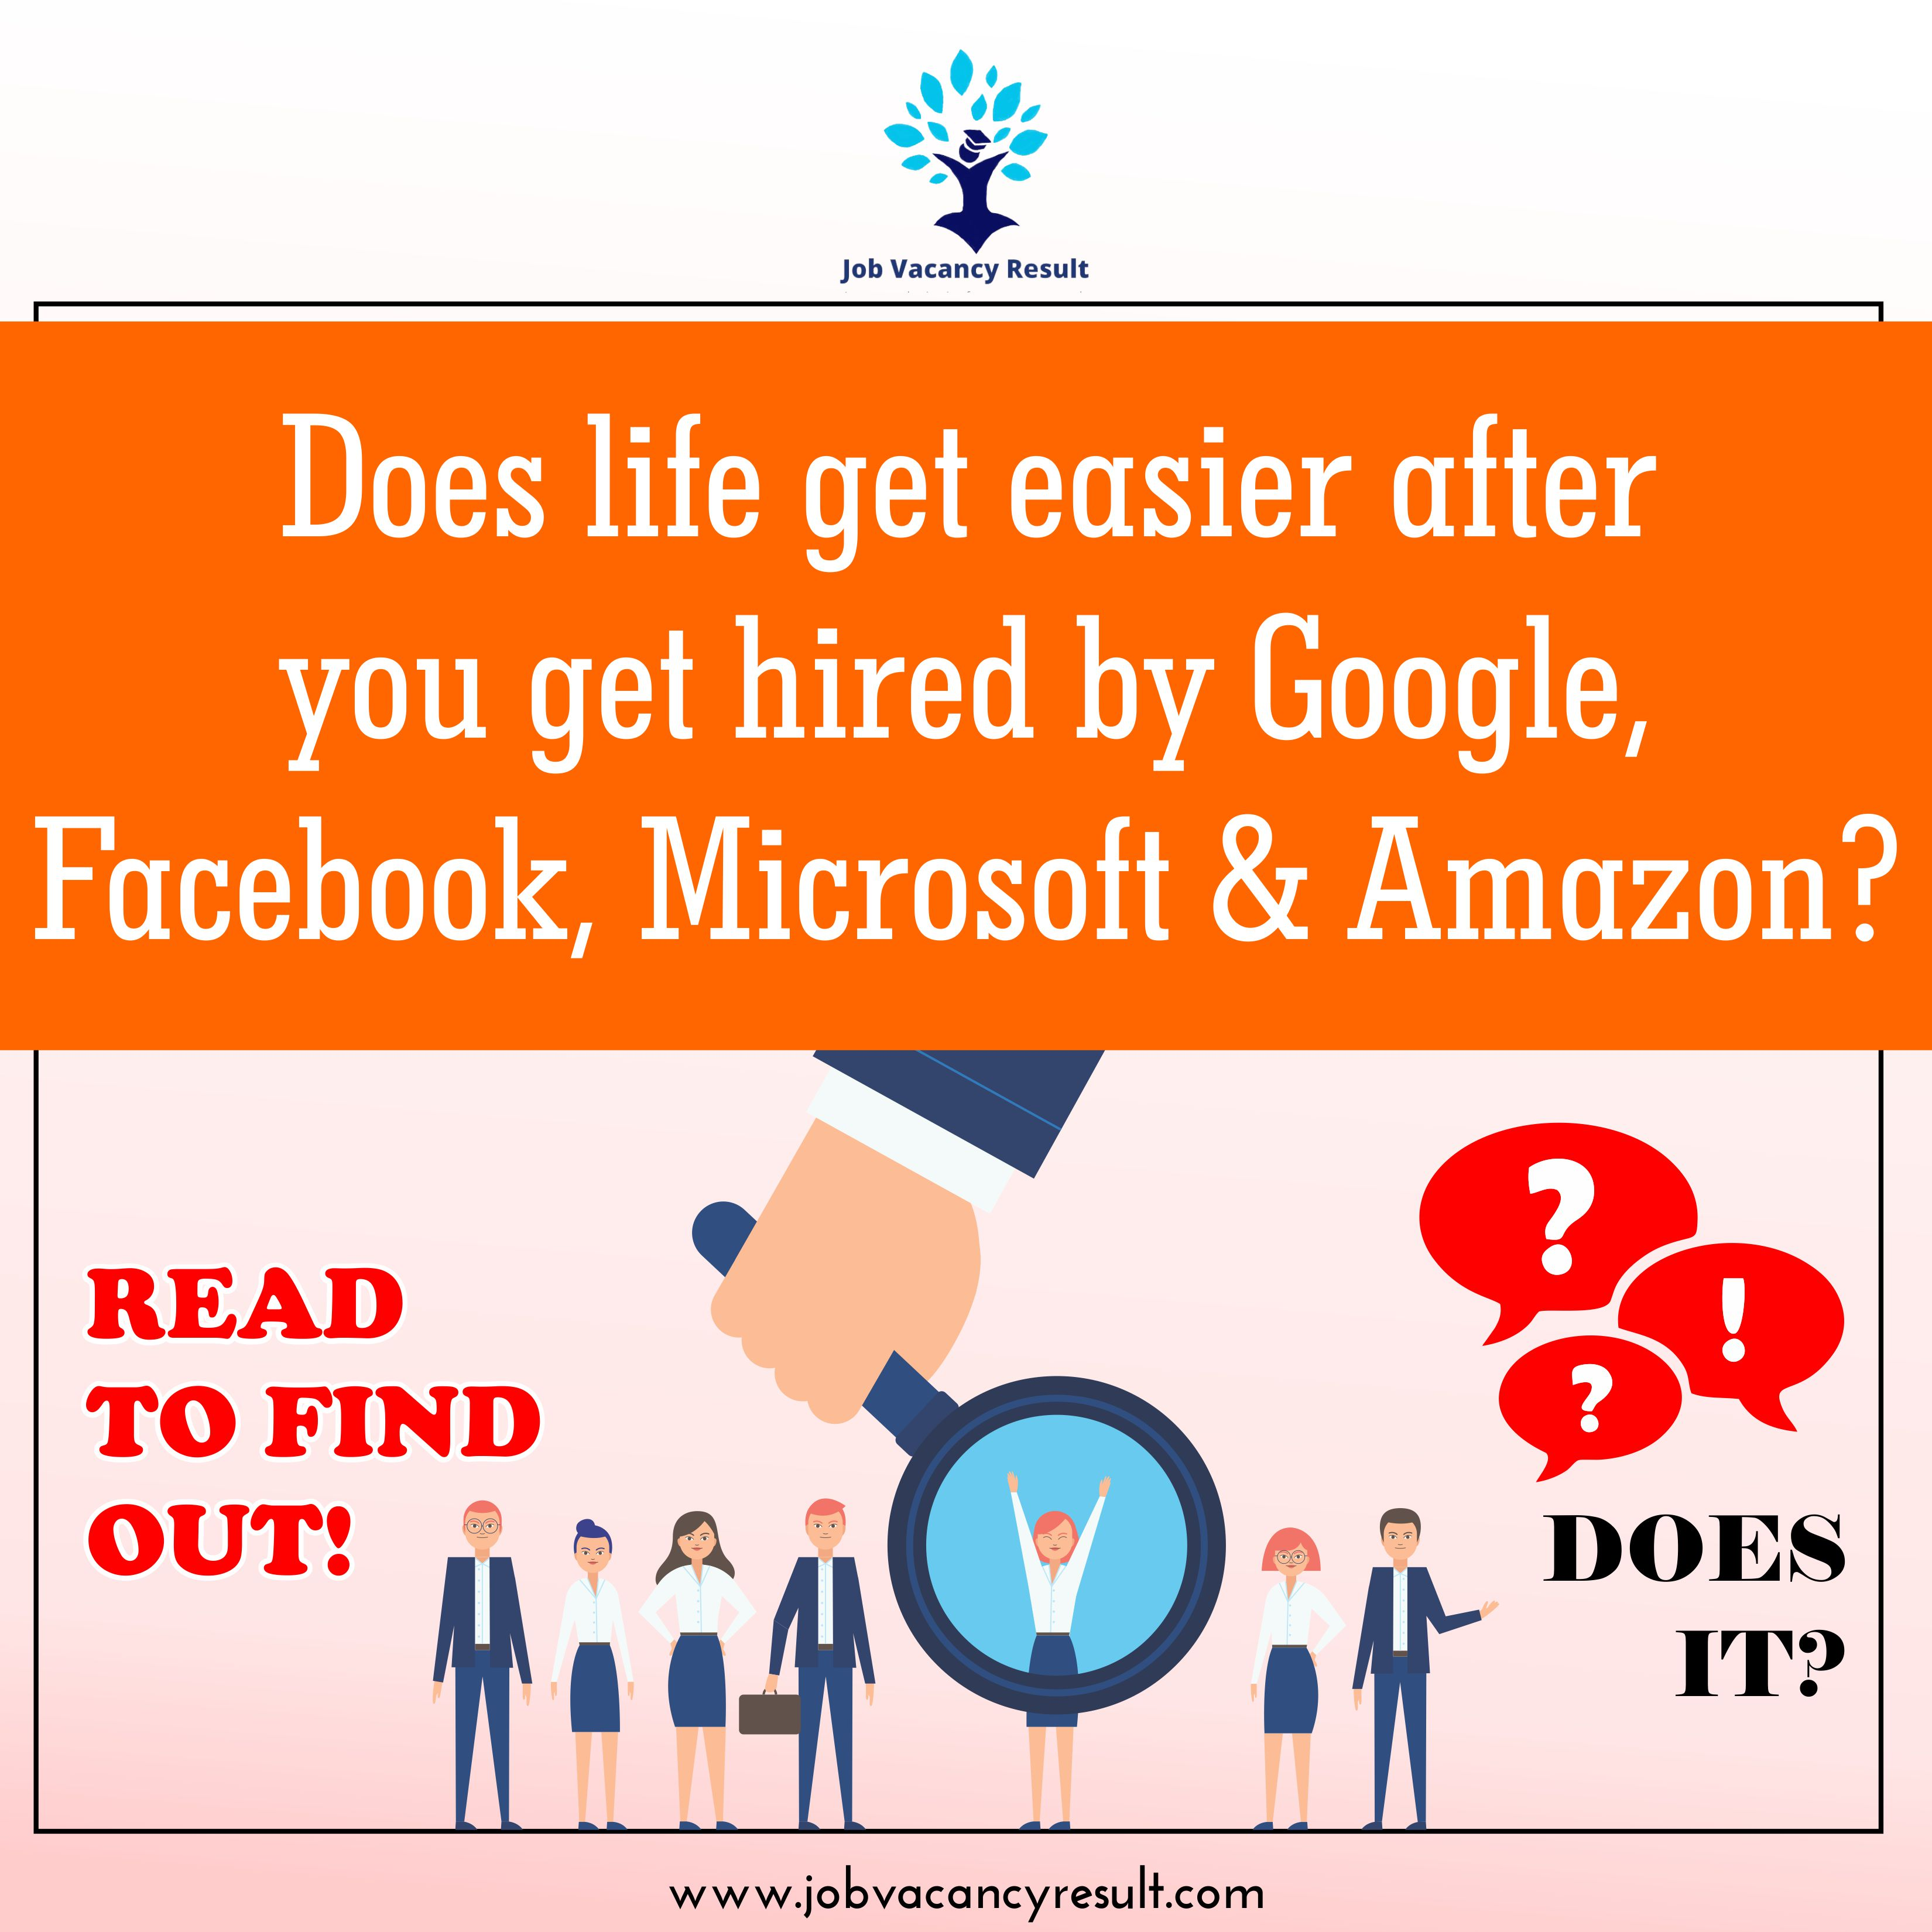 Does life get easier after you get hired by Google, Facebook, Microsoft or Amazon?